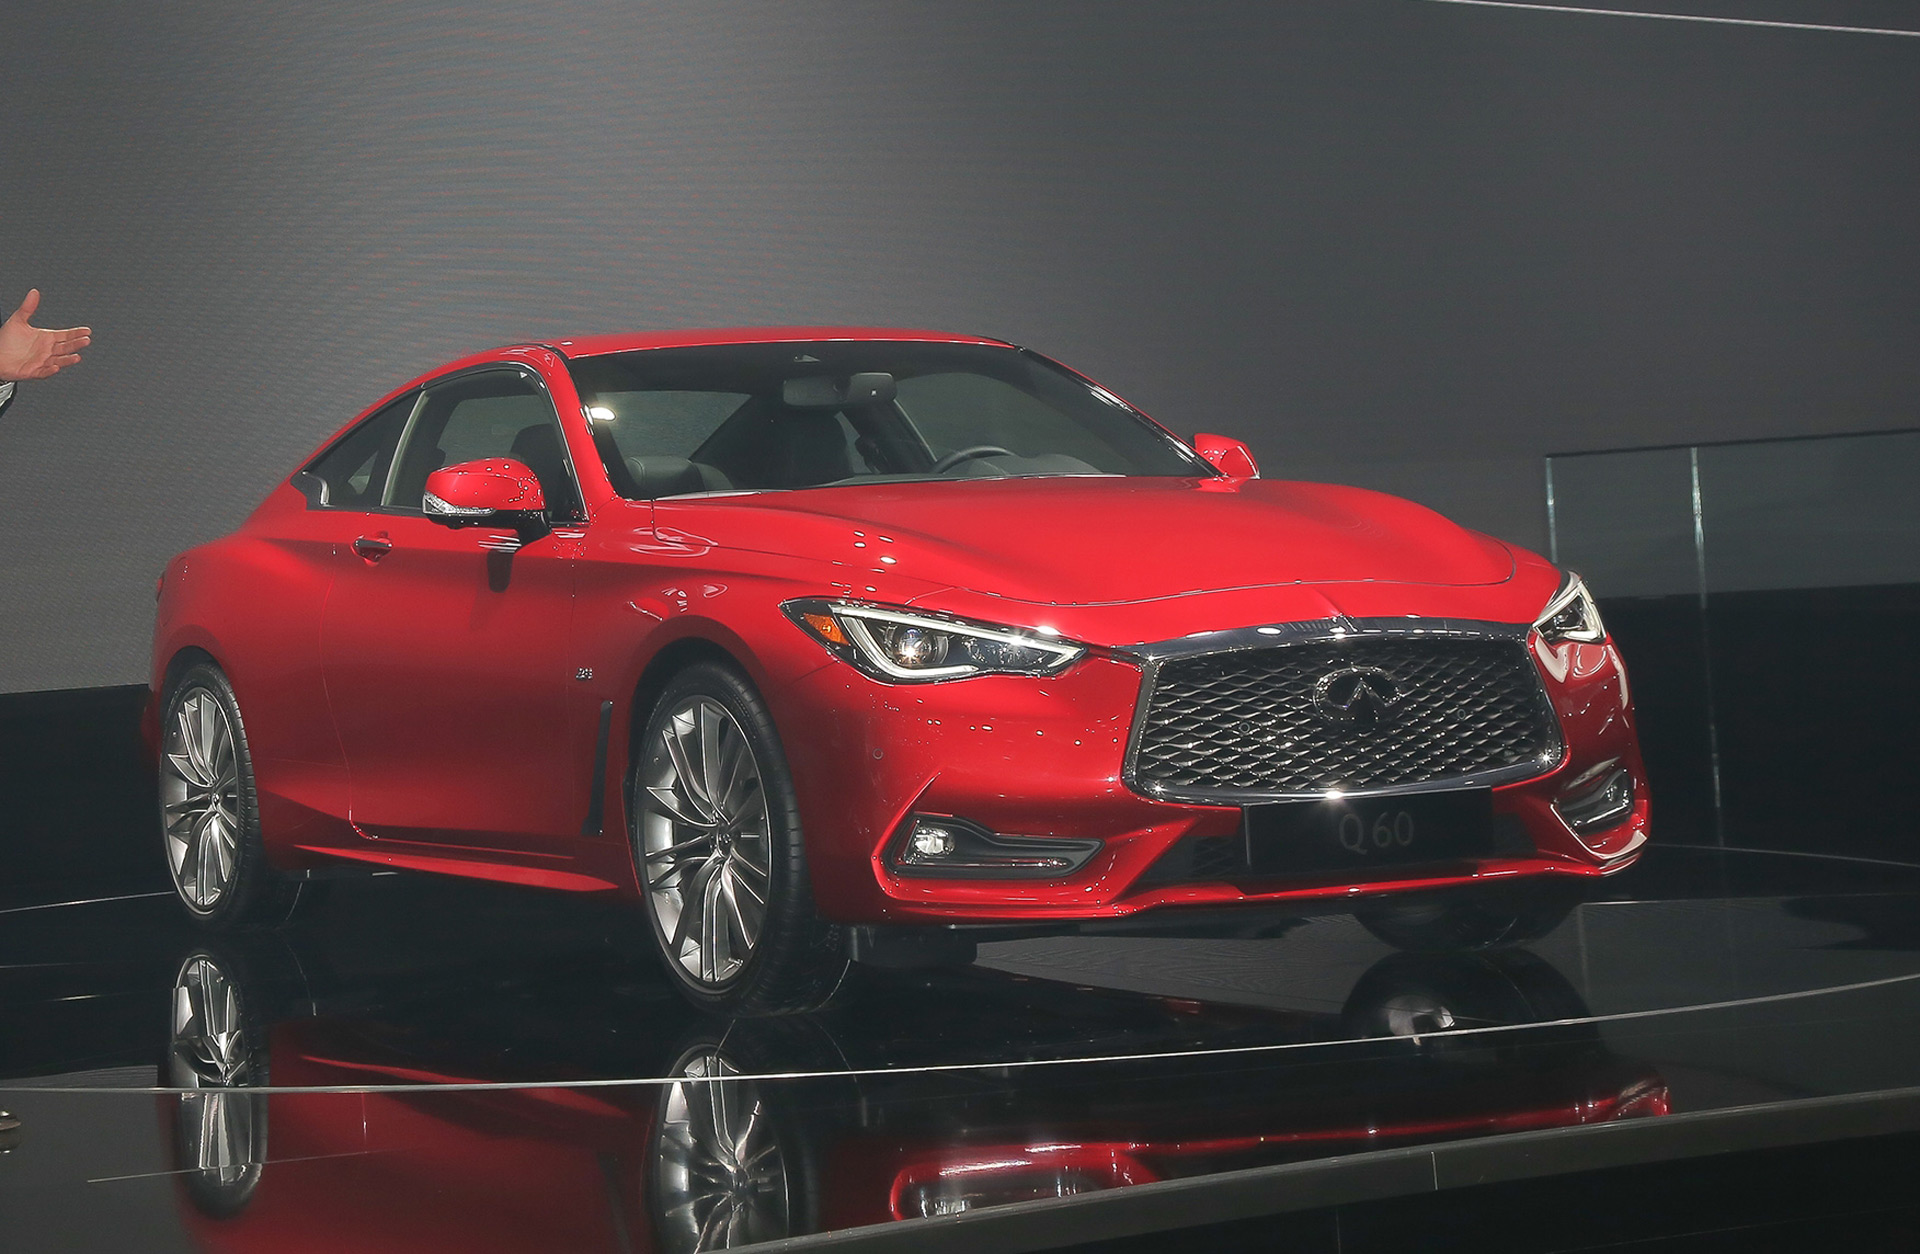 New Infiniti Q60 Coupe Will Be Second Model With Red Sport Performance Trim